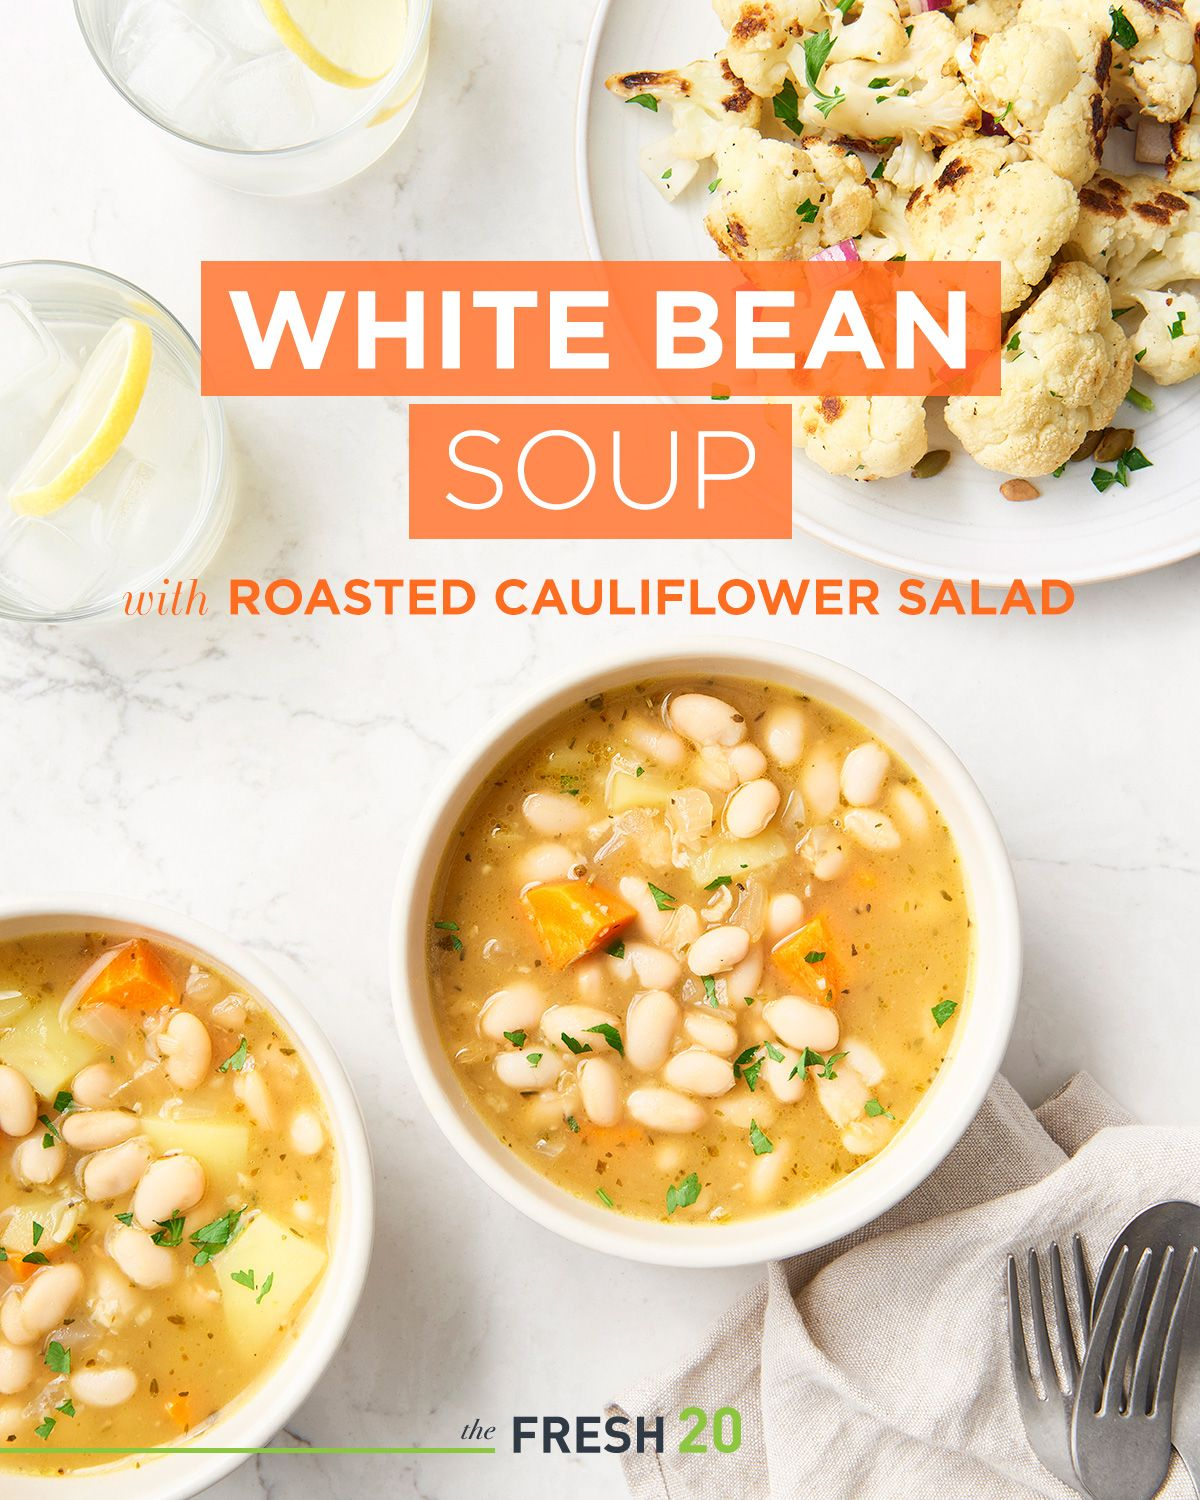 White Bean Soup With Roasted Cauliflower Salad The Fresh 20 Recipe White Bean Soup Roasted Cauliflower Salad Cauliflower Salad